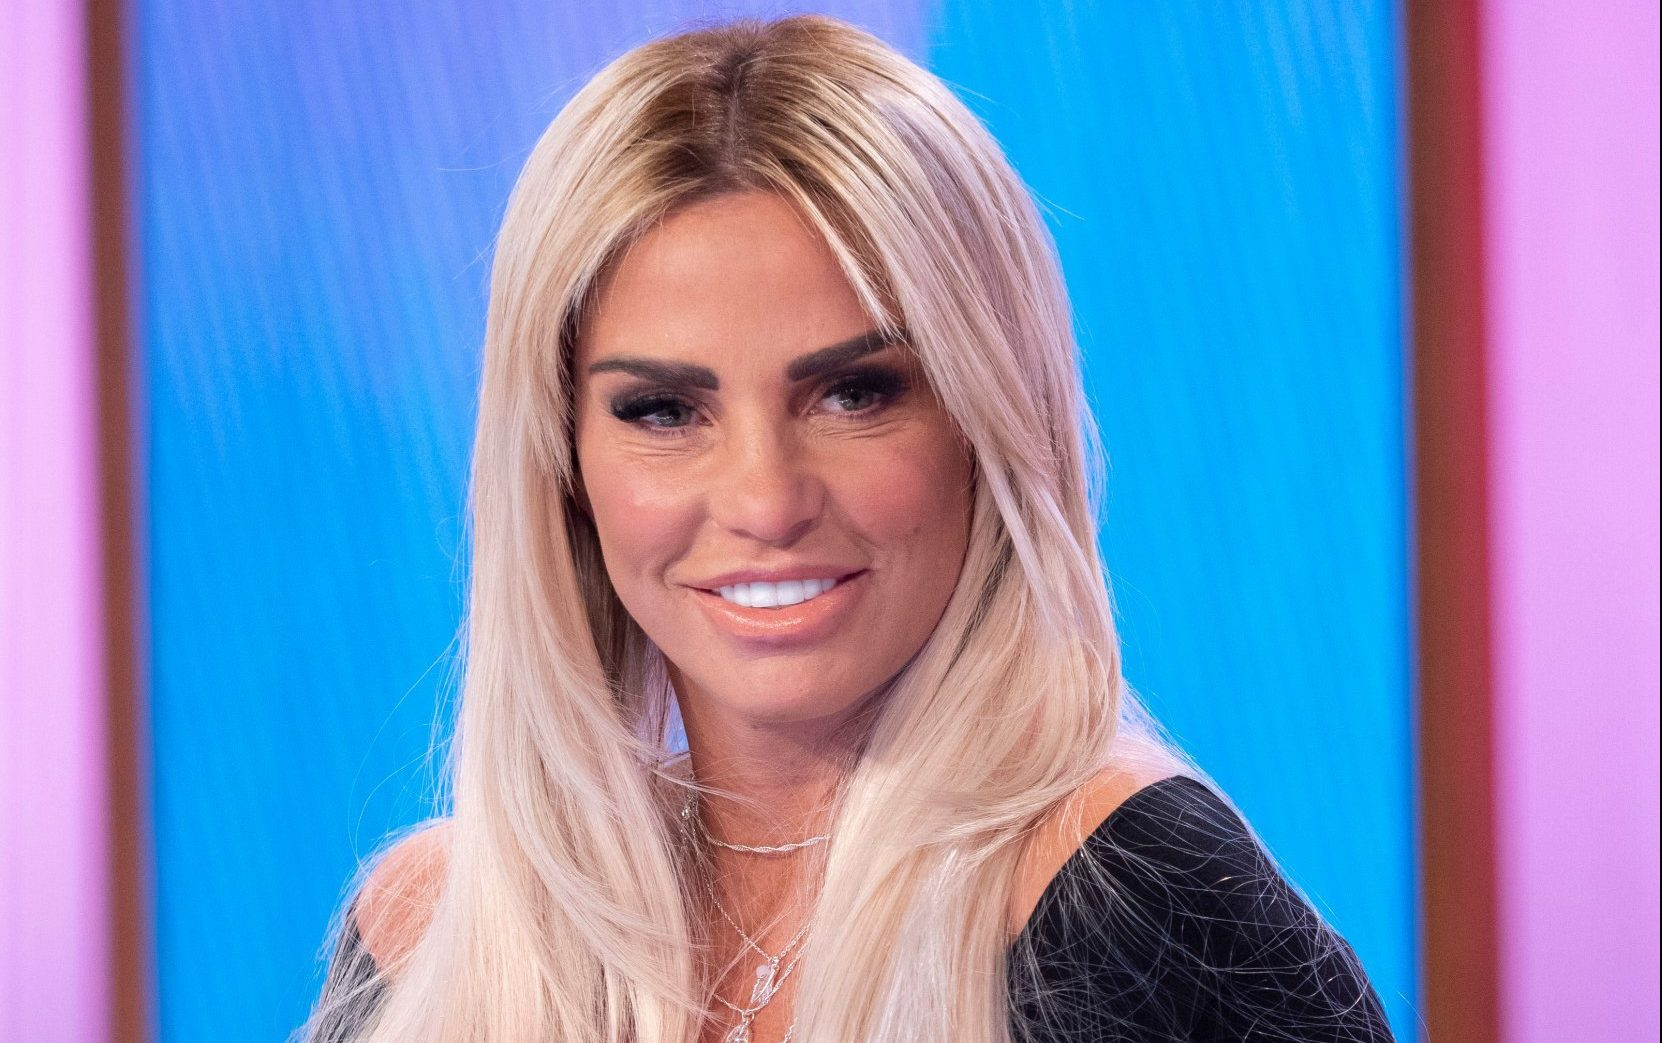 Editorial use only Mandatory Credit: Photo by Ken McKay/ITV/REX (10183796ap) Katie Price 'Loose Women' TV show, London, UK - 01 Apr 2019 GUESTS: KATIE PRICE AND MUM AMY It's been 18 months since Amy Price first joined us to talk about being diagnosed with incurable lung condition. Amy will be joining us today along with Katie to talk about how she is doing and how the family is coping.